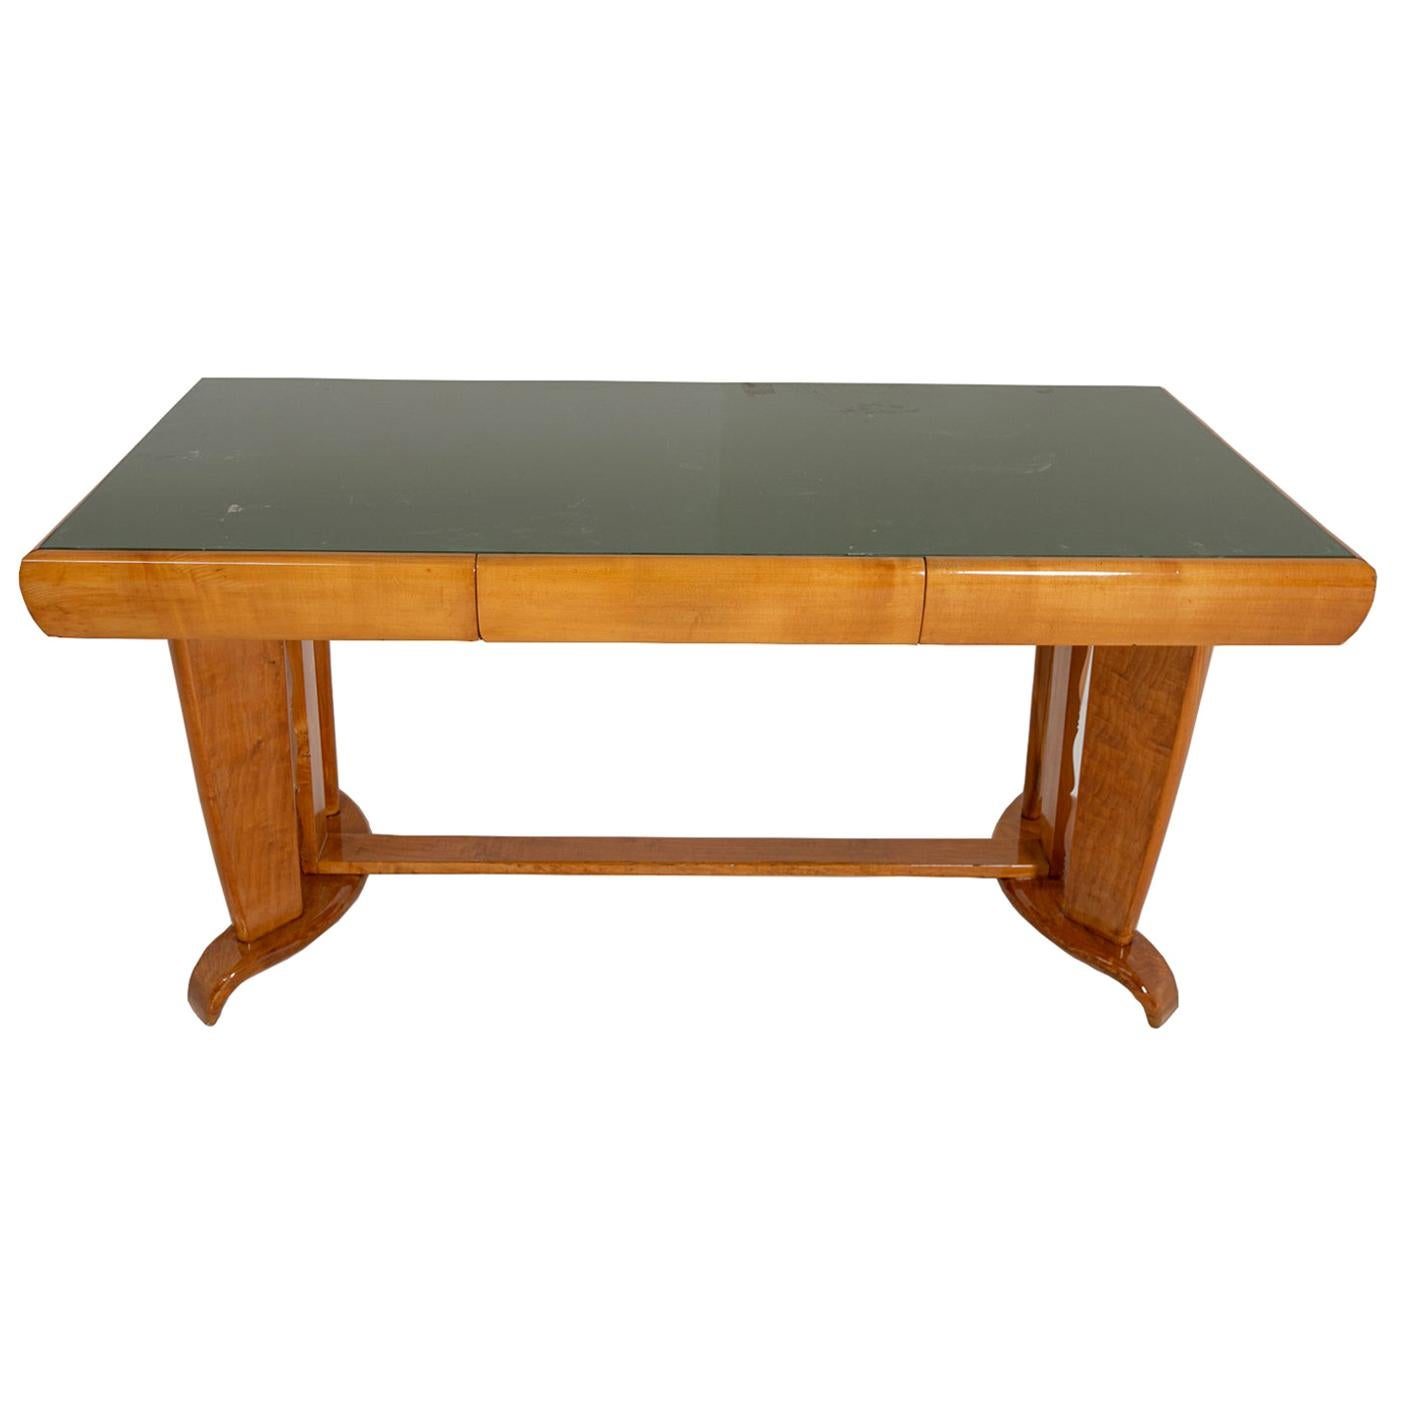 Desk Attr. to Paolo Buffa in Maple and Opaline Glass 1940s